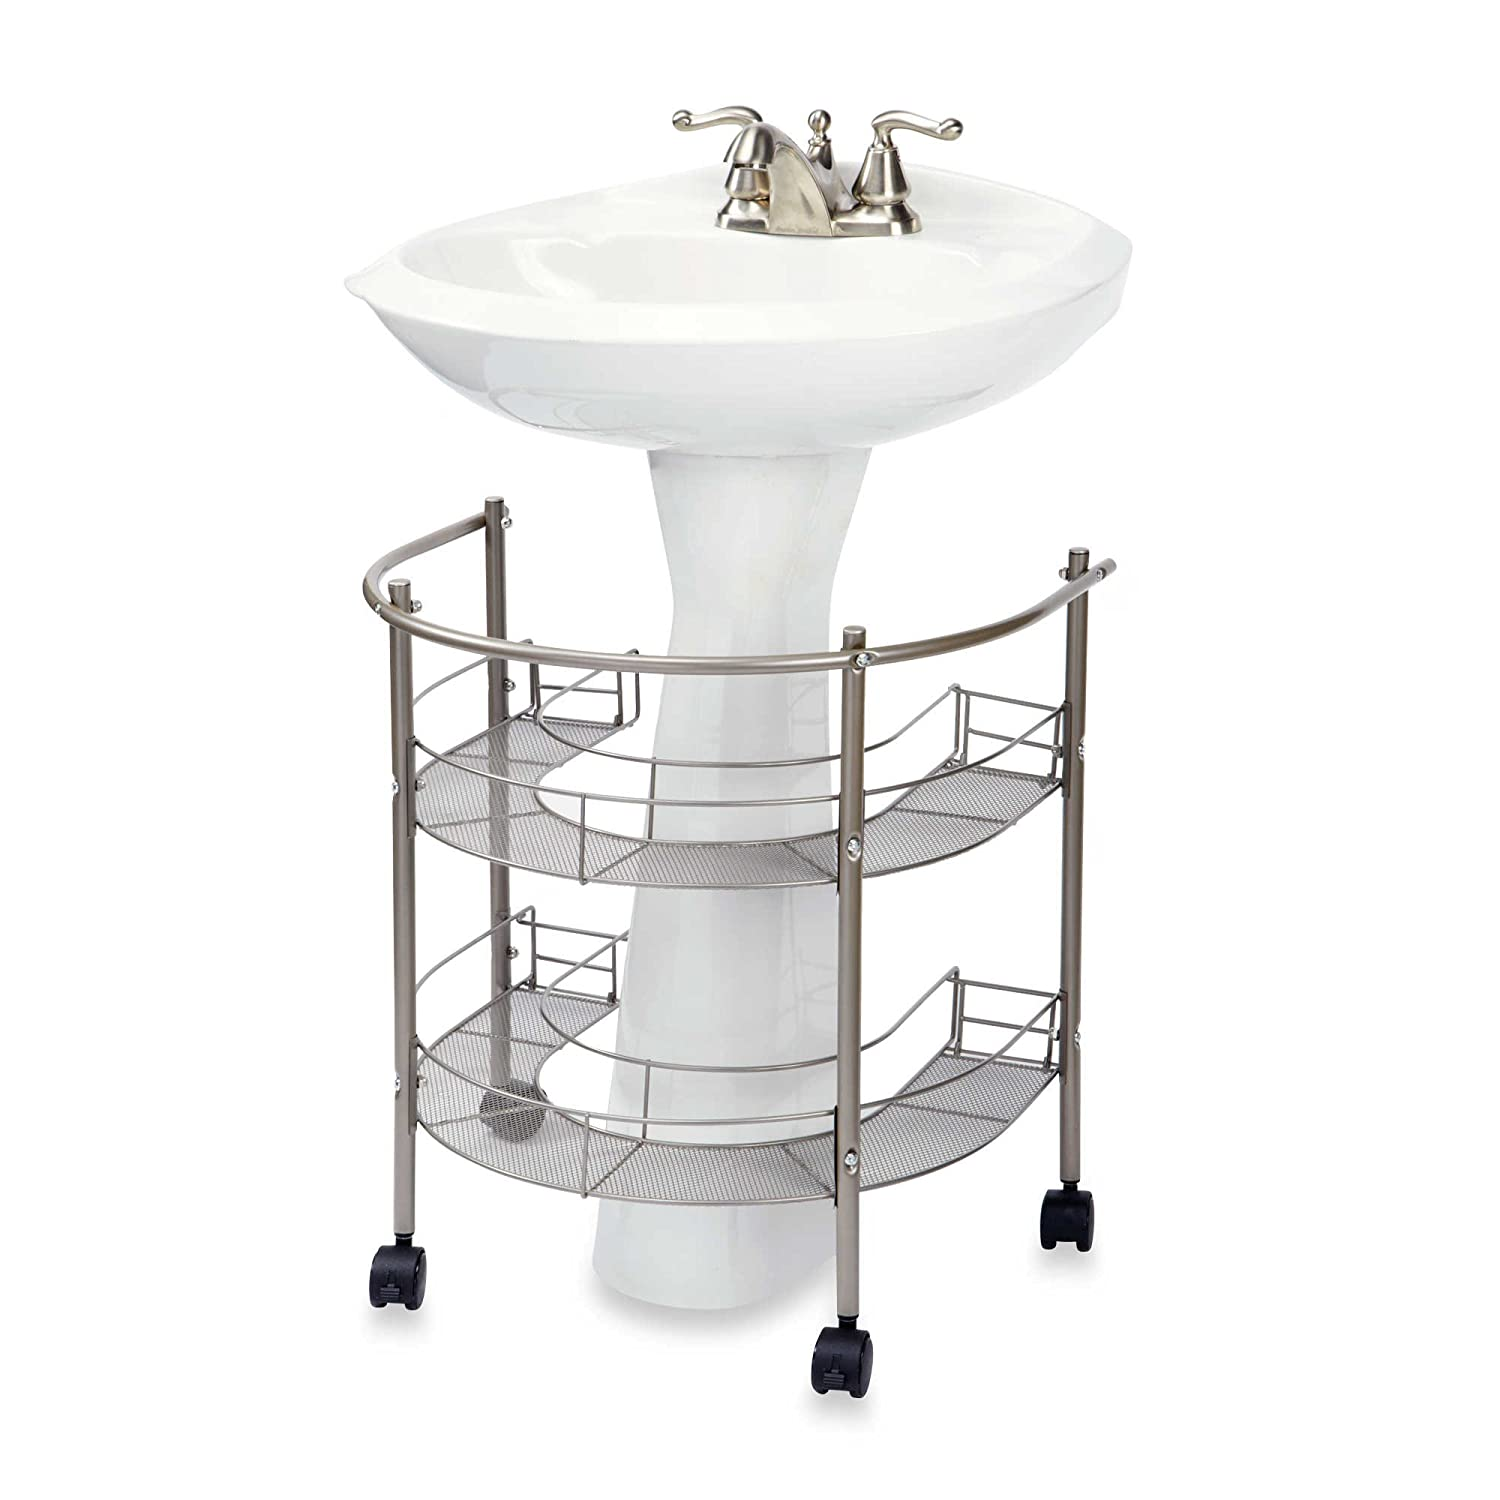 Amazon.com - Rolling Organizer For Pedestal Sink - Two Tiers Wrap-Around  Storage w/ Smooth Glide Casters, Easy to Assemble, Guaranteed High Quality -